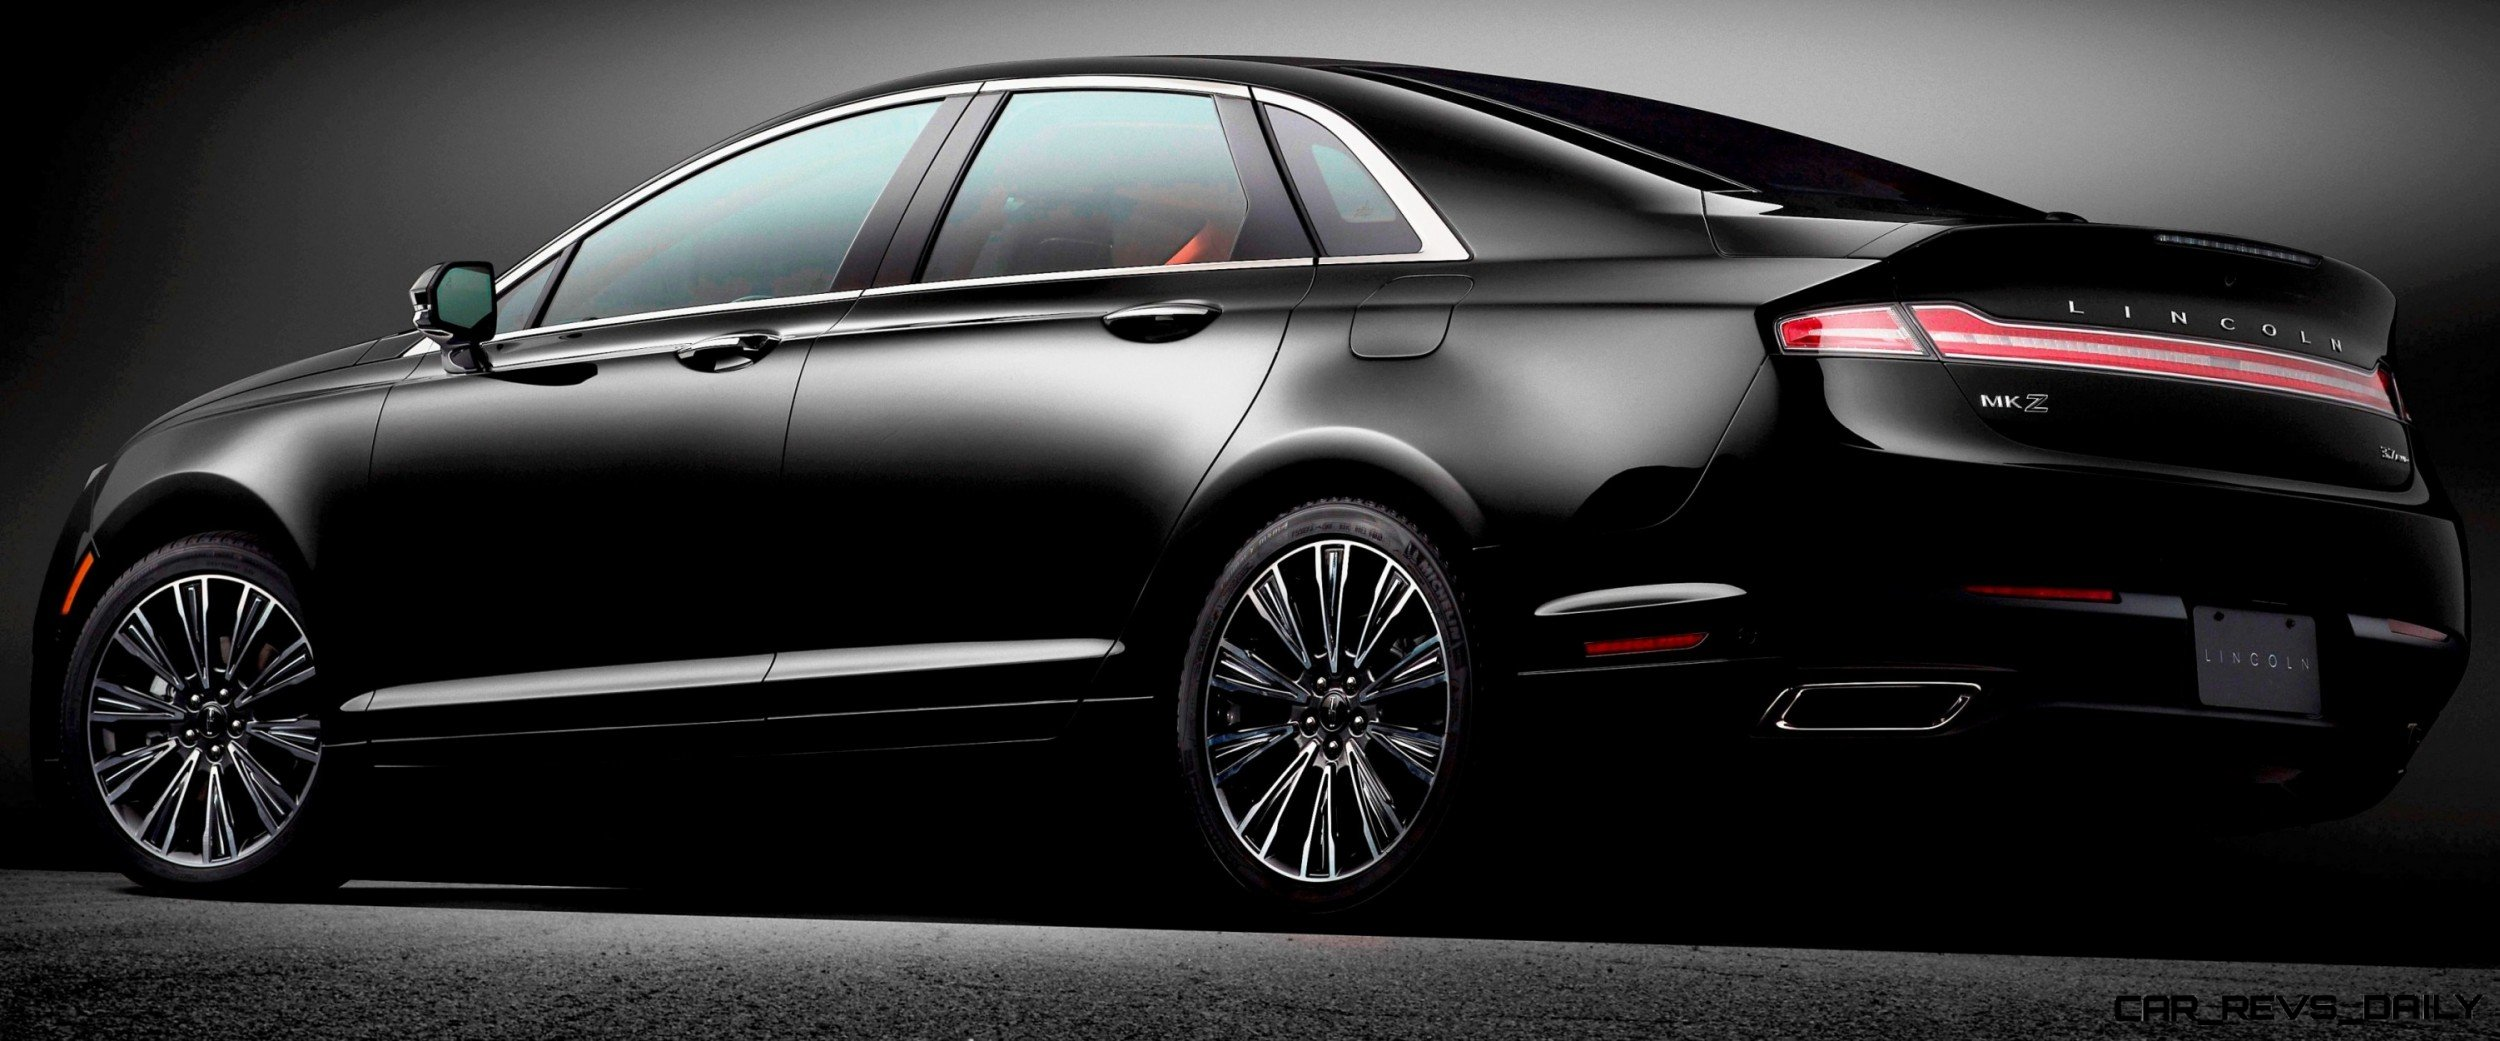 2014 lincoln mkz 3 7 awd shows very handsome kamm tail car revs. Black Bedroom Furniture Sets. Home Design Ideas